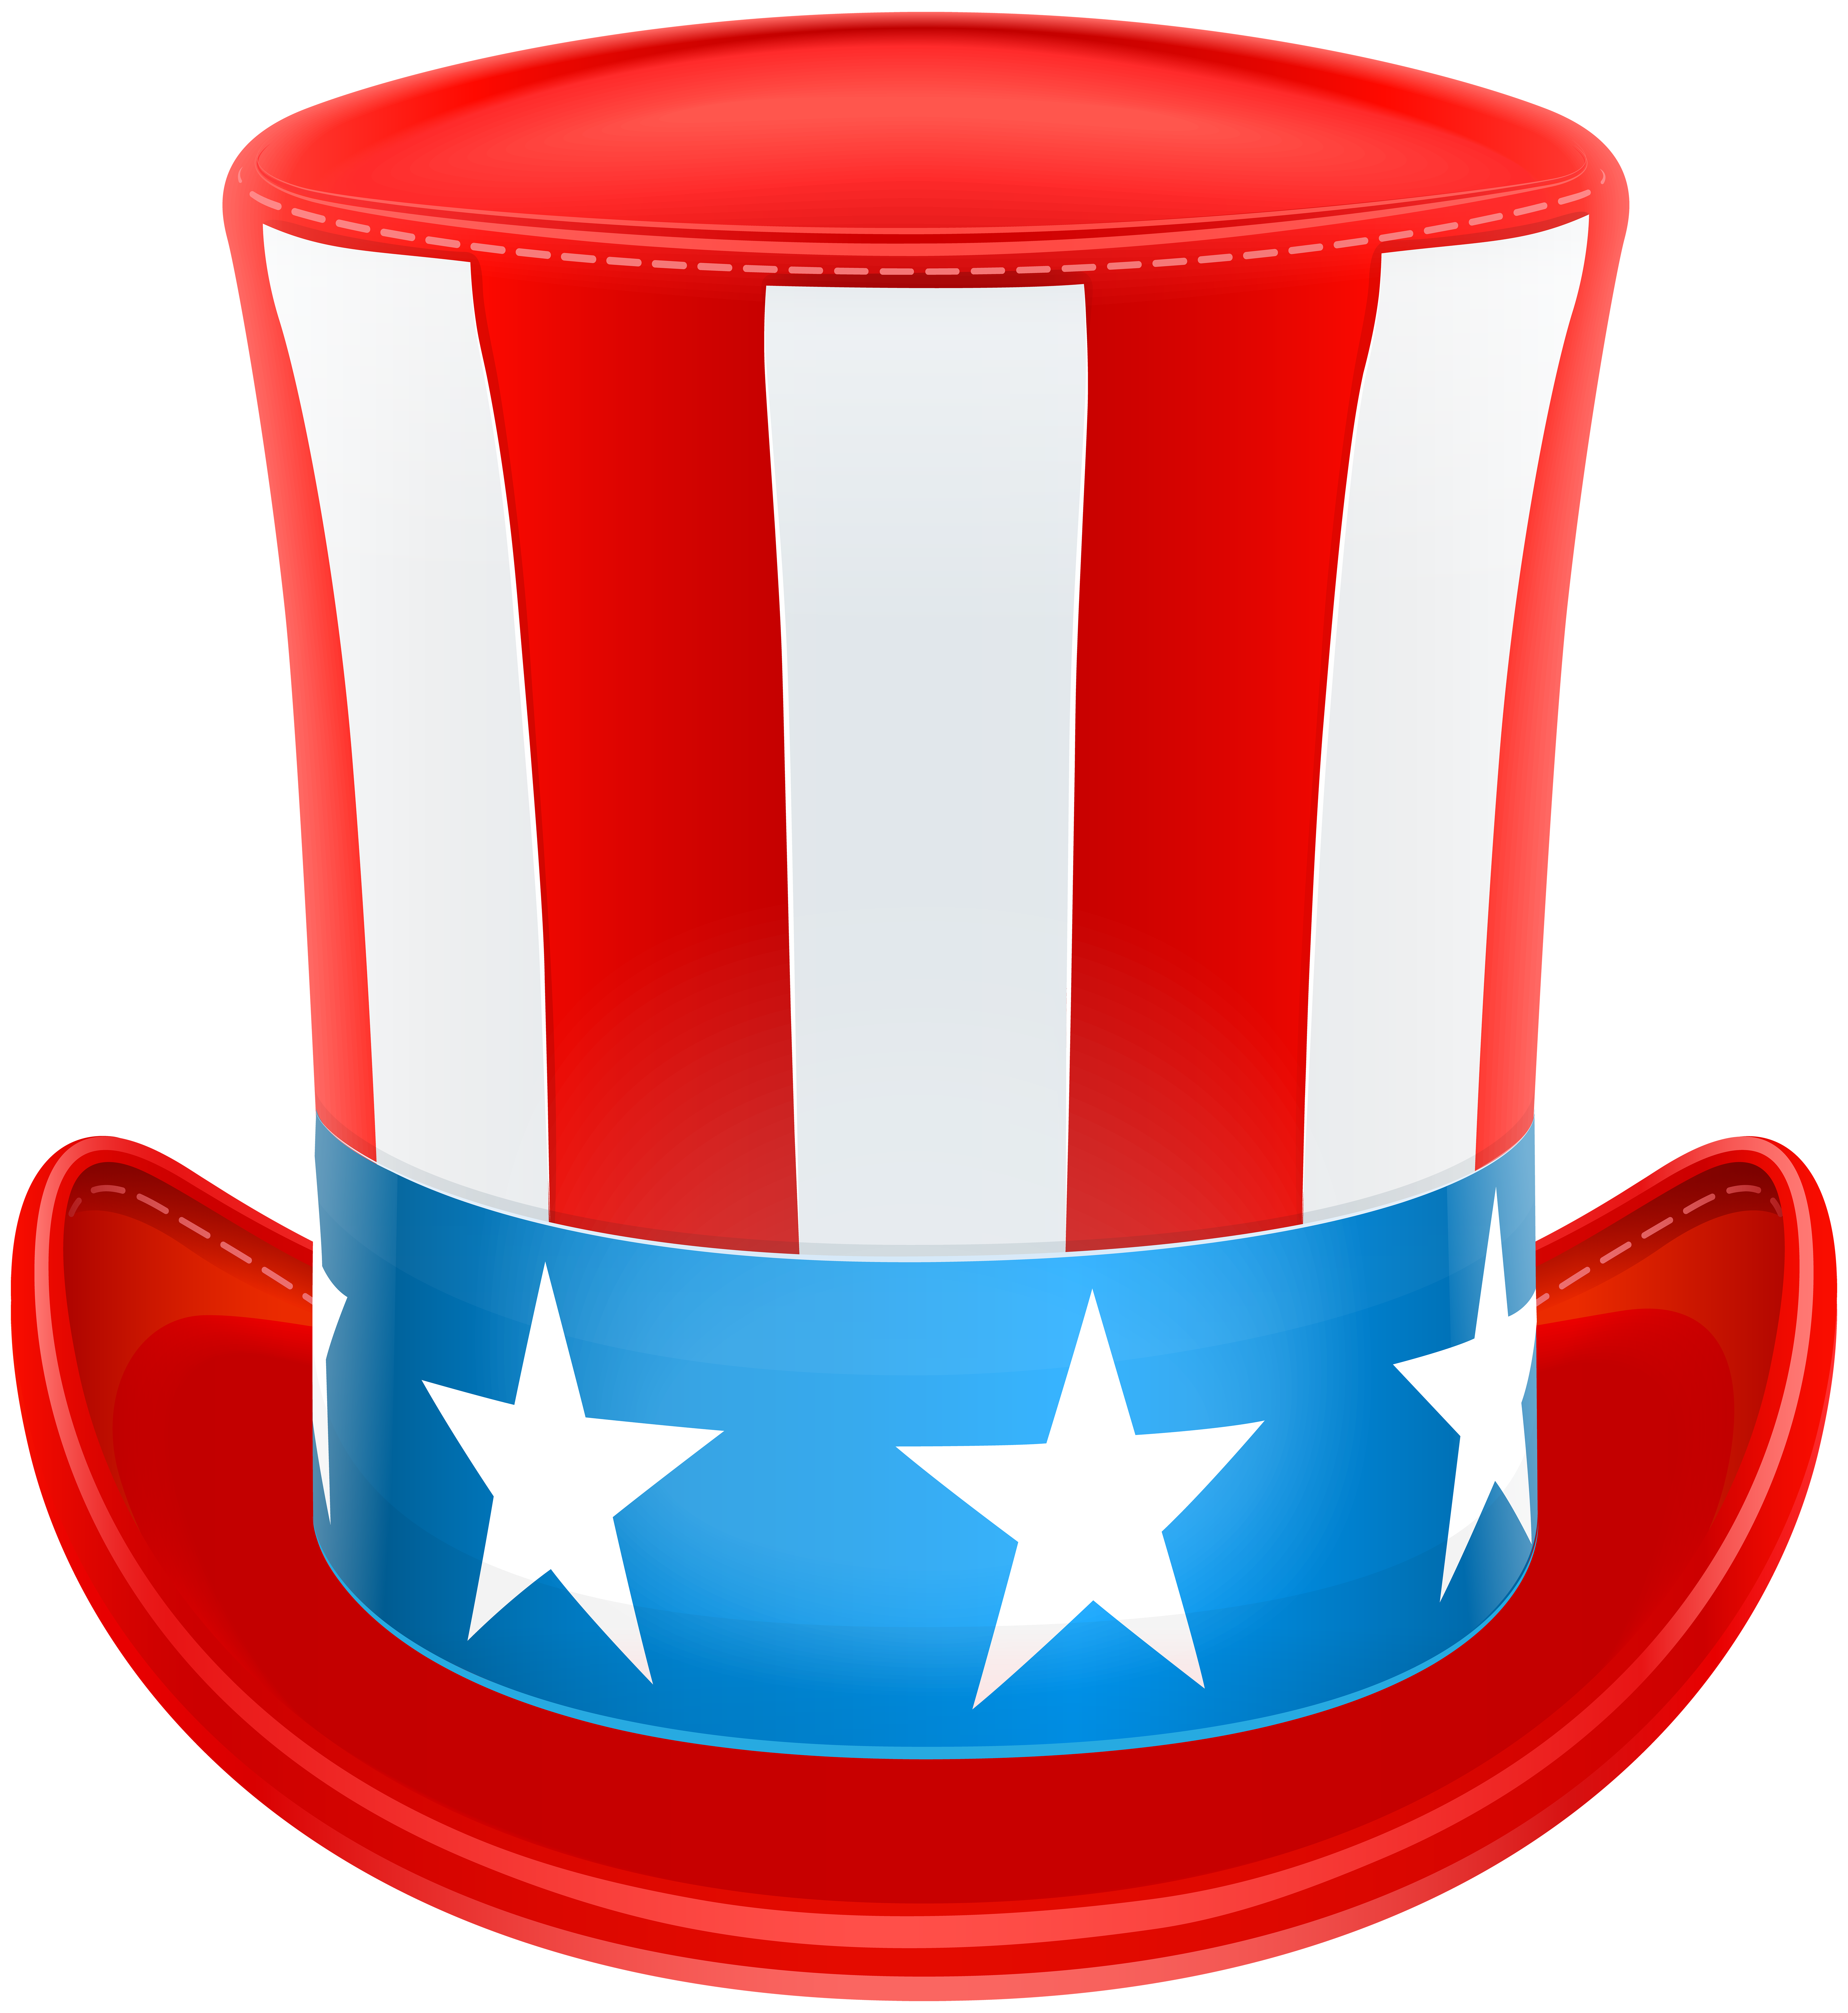 usa clipart patriotic